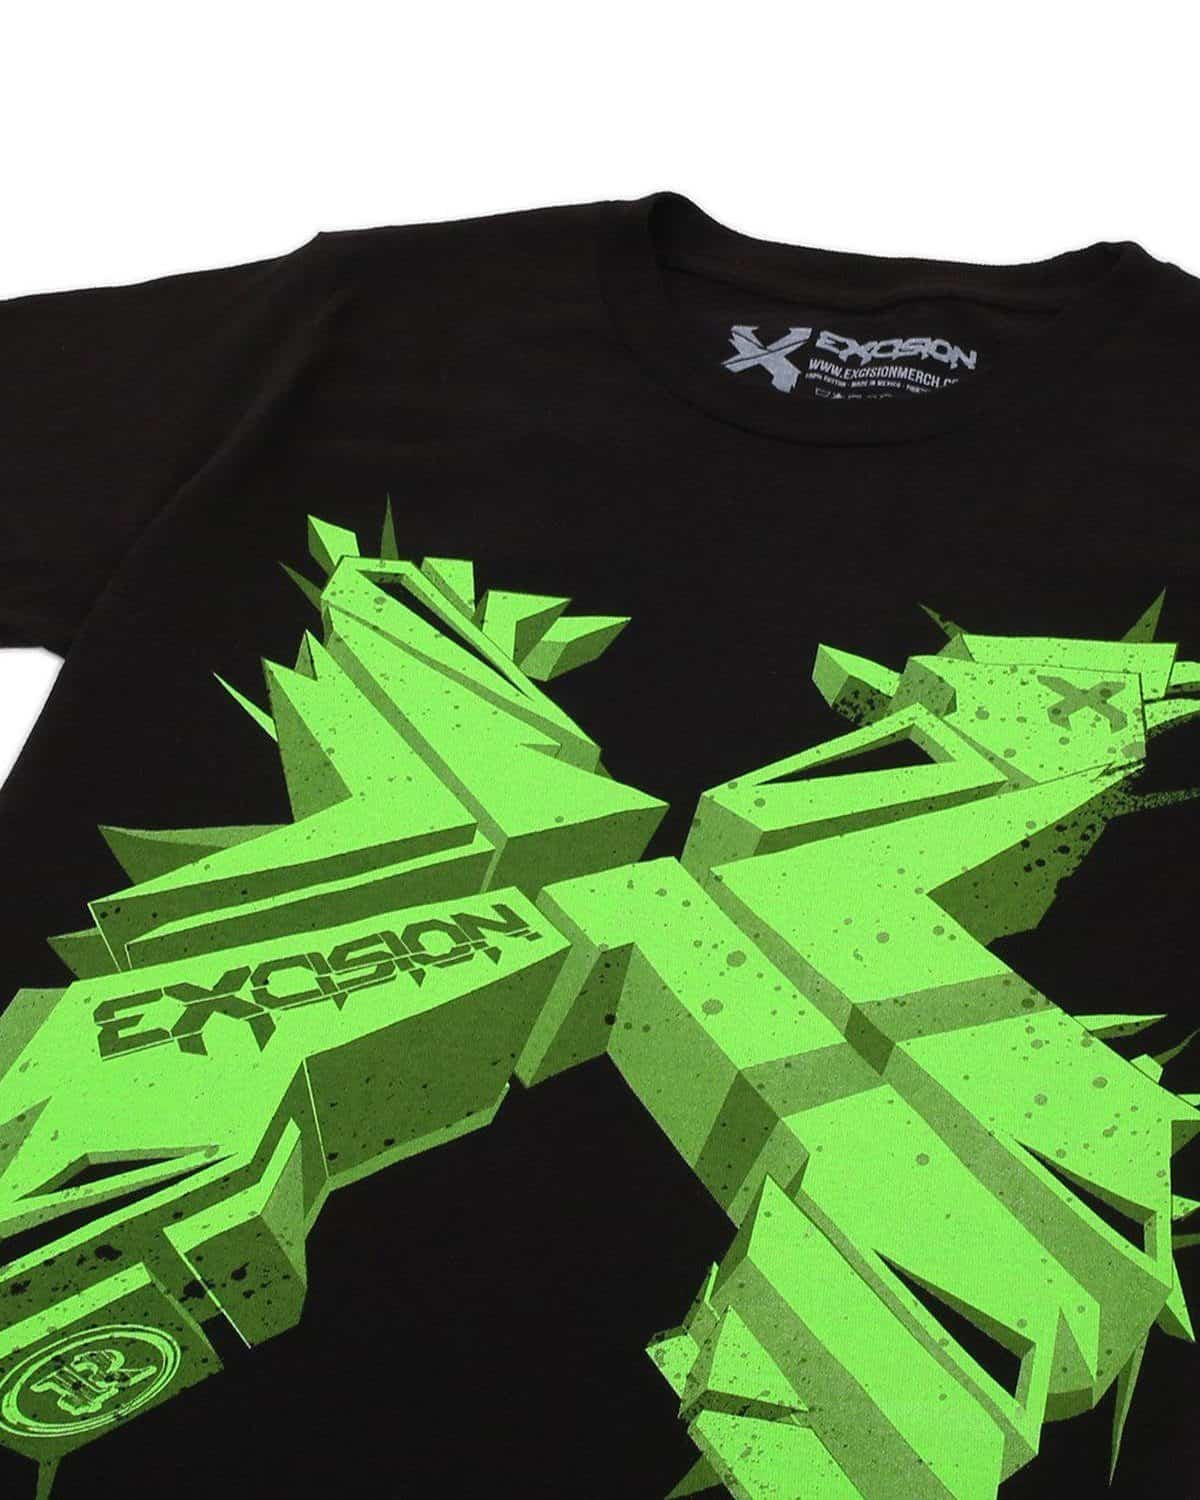 Excision 3DX Unisex Tee - Black/Green